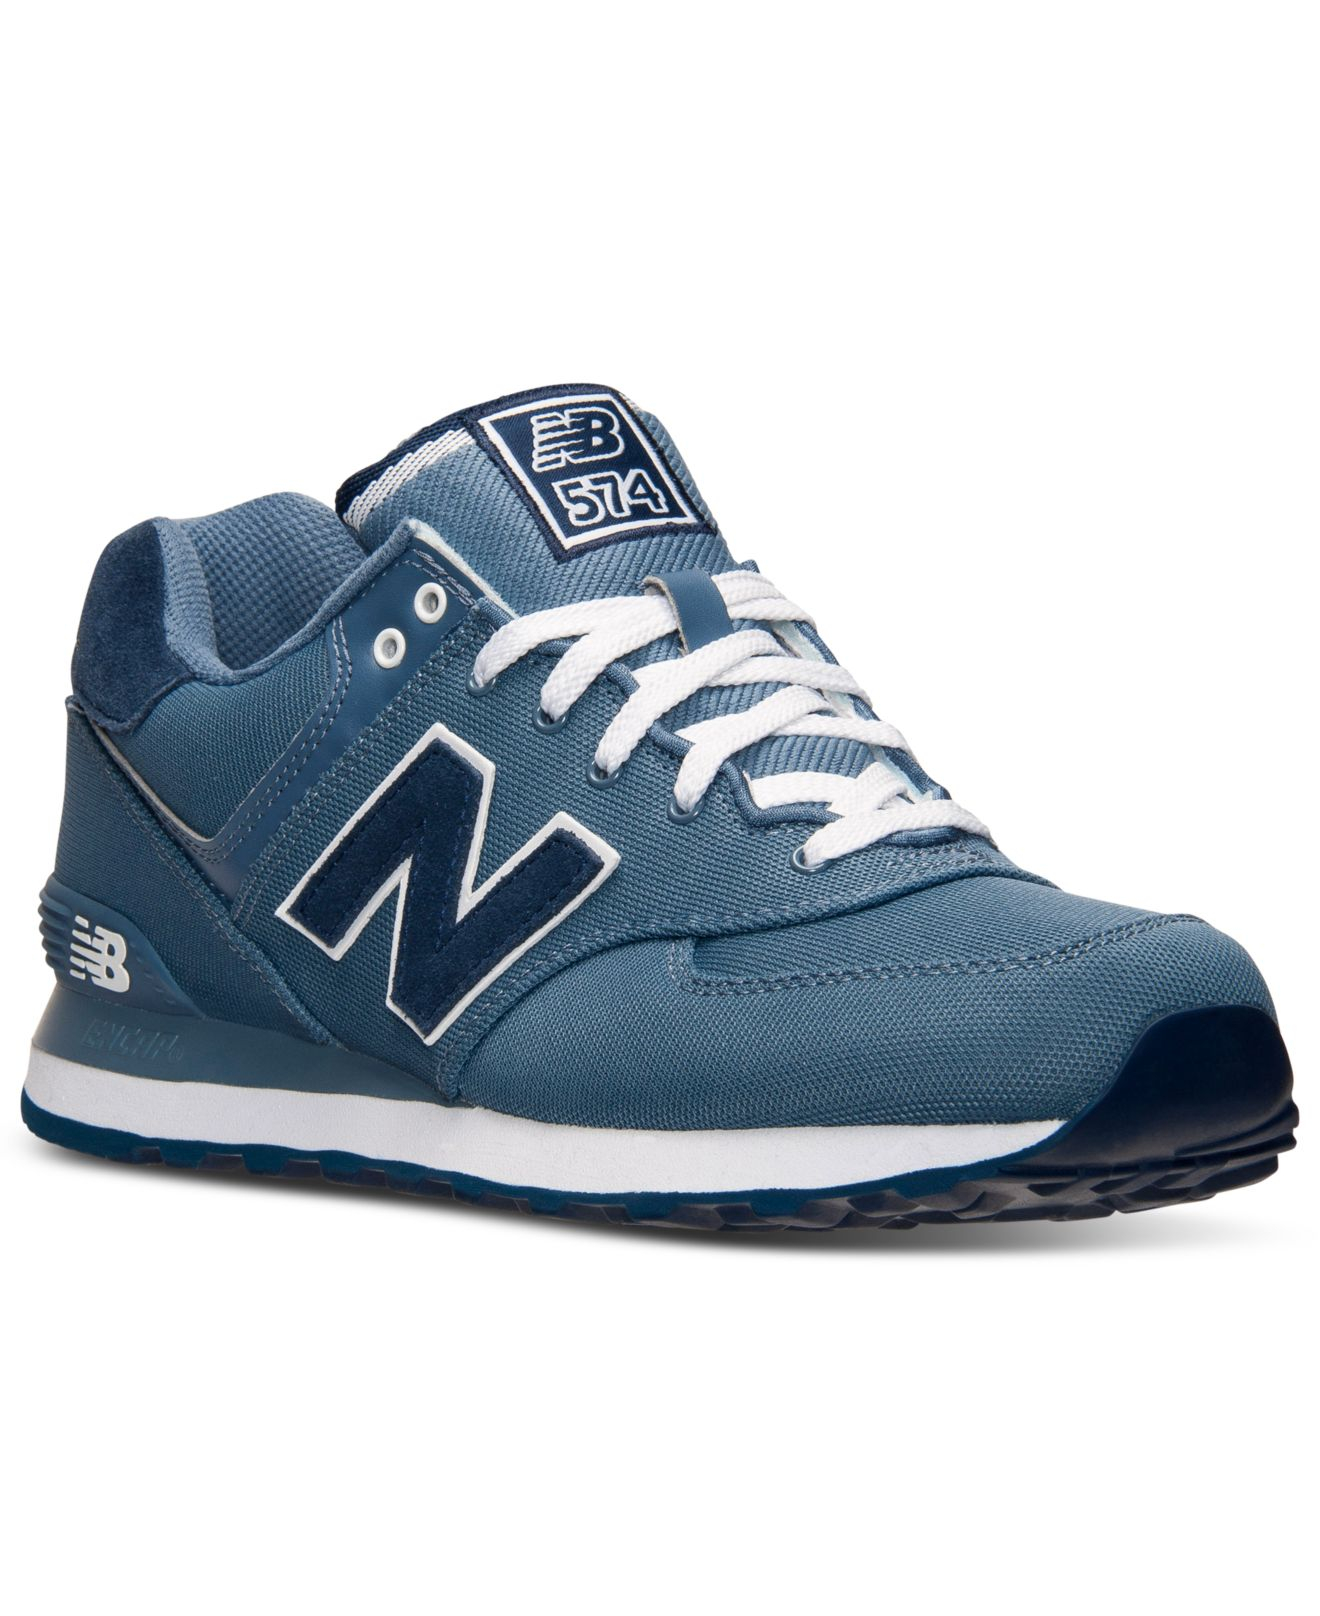 5bfbccc57e ... authentic lyst new balance mens 574 pique polo casual sneakers from  finish 4e40d e4c9e